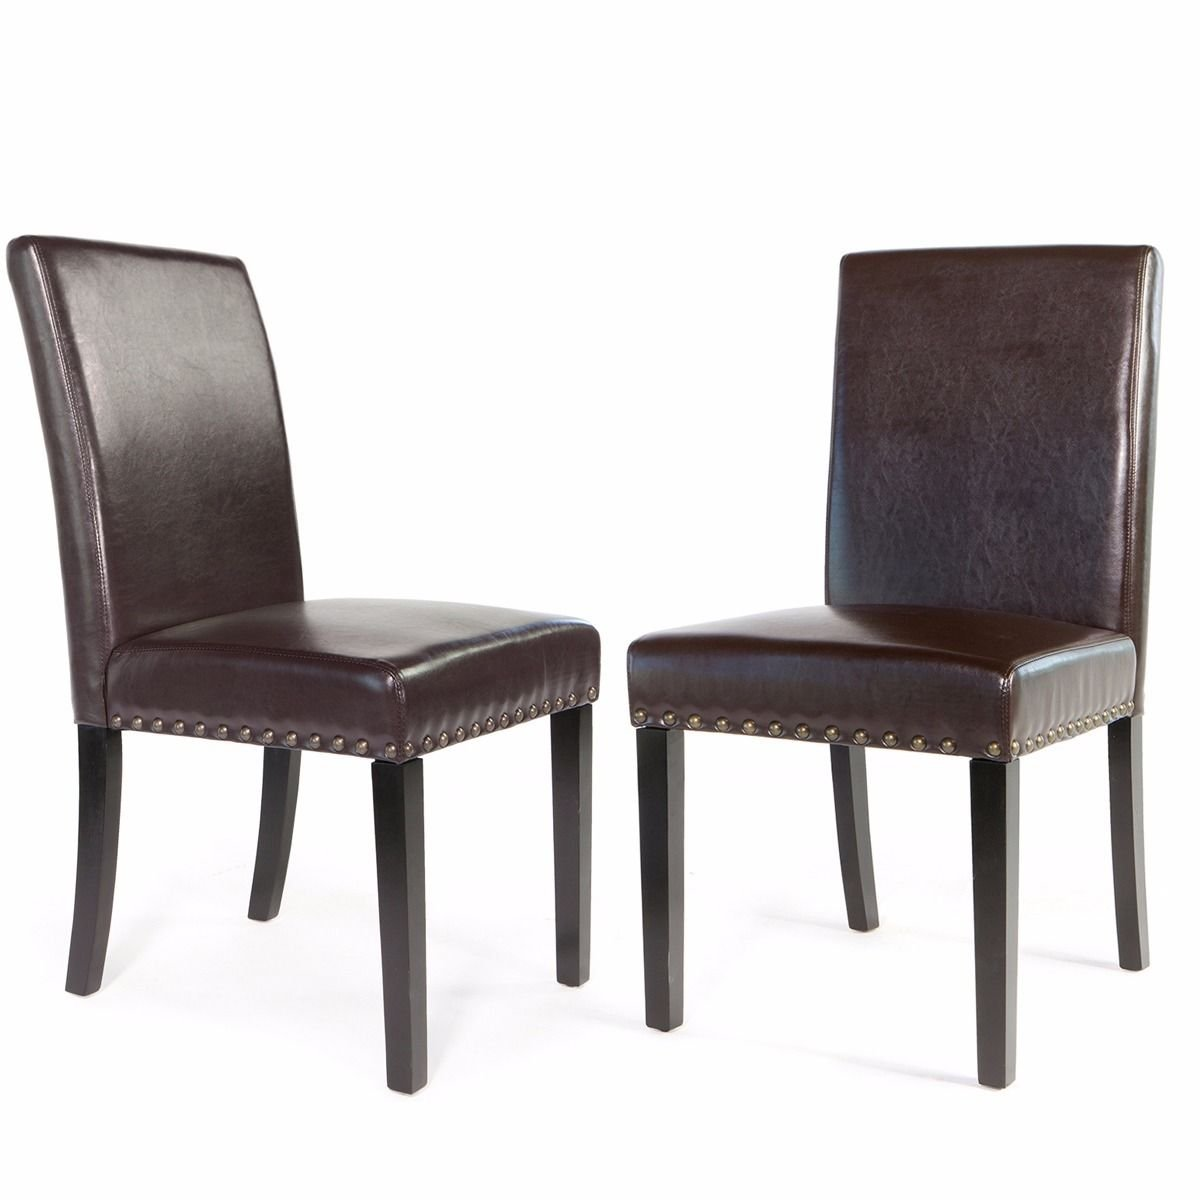 Barton Set of 2 Parson Faux Leather Dining Chair with Nailhead Trim Padded Seating Backrest w Wooden Legs, Brown